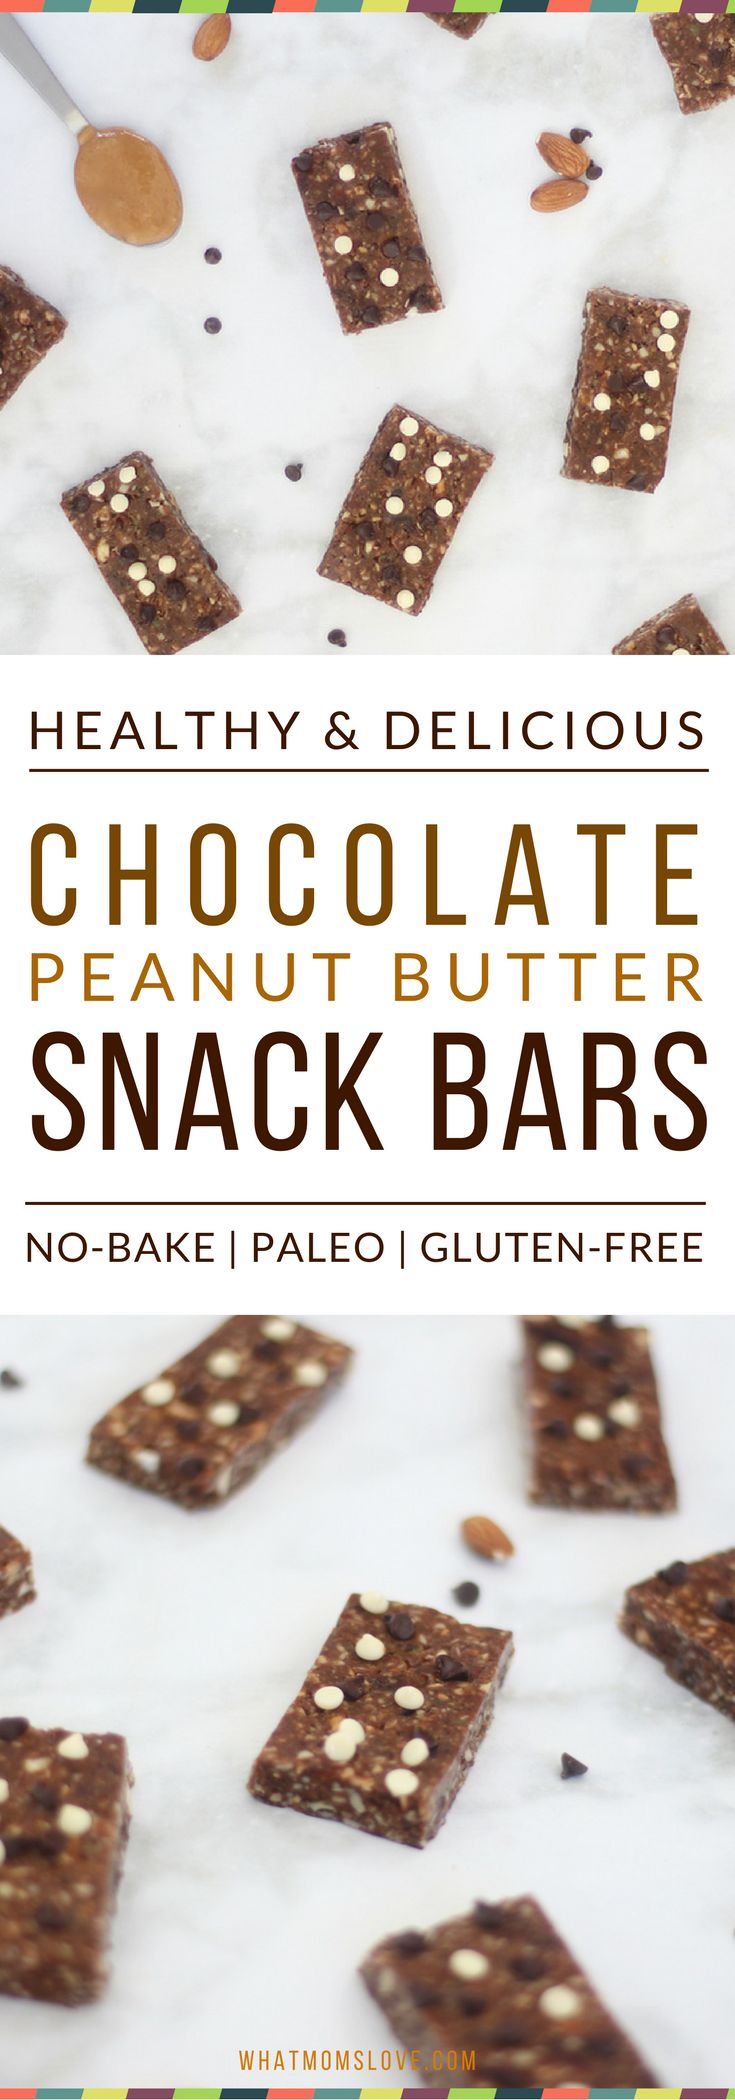 Looking for a healthier, homemade alternative to store-bought granola bars? These Double Chocolate Peanut Butter Snack Bars may sound indulgent, but they are packed with protein, healthy fats and antioxidants. There's no refined sugar, they'll give you tons of energy and help with your clean eating. No-bake and super simple to make. Bonus: they are Vegan, Gluten-Free and Paleo compliant!